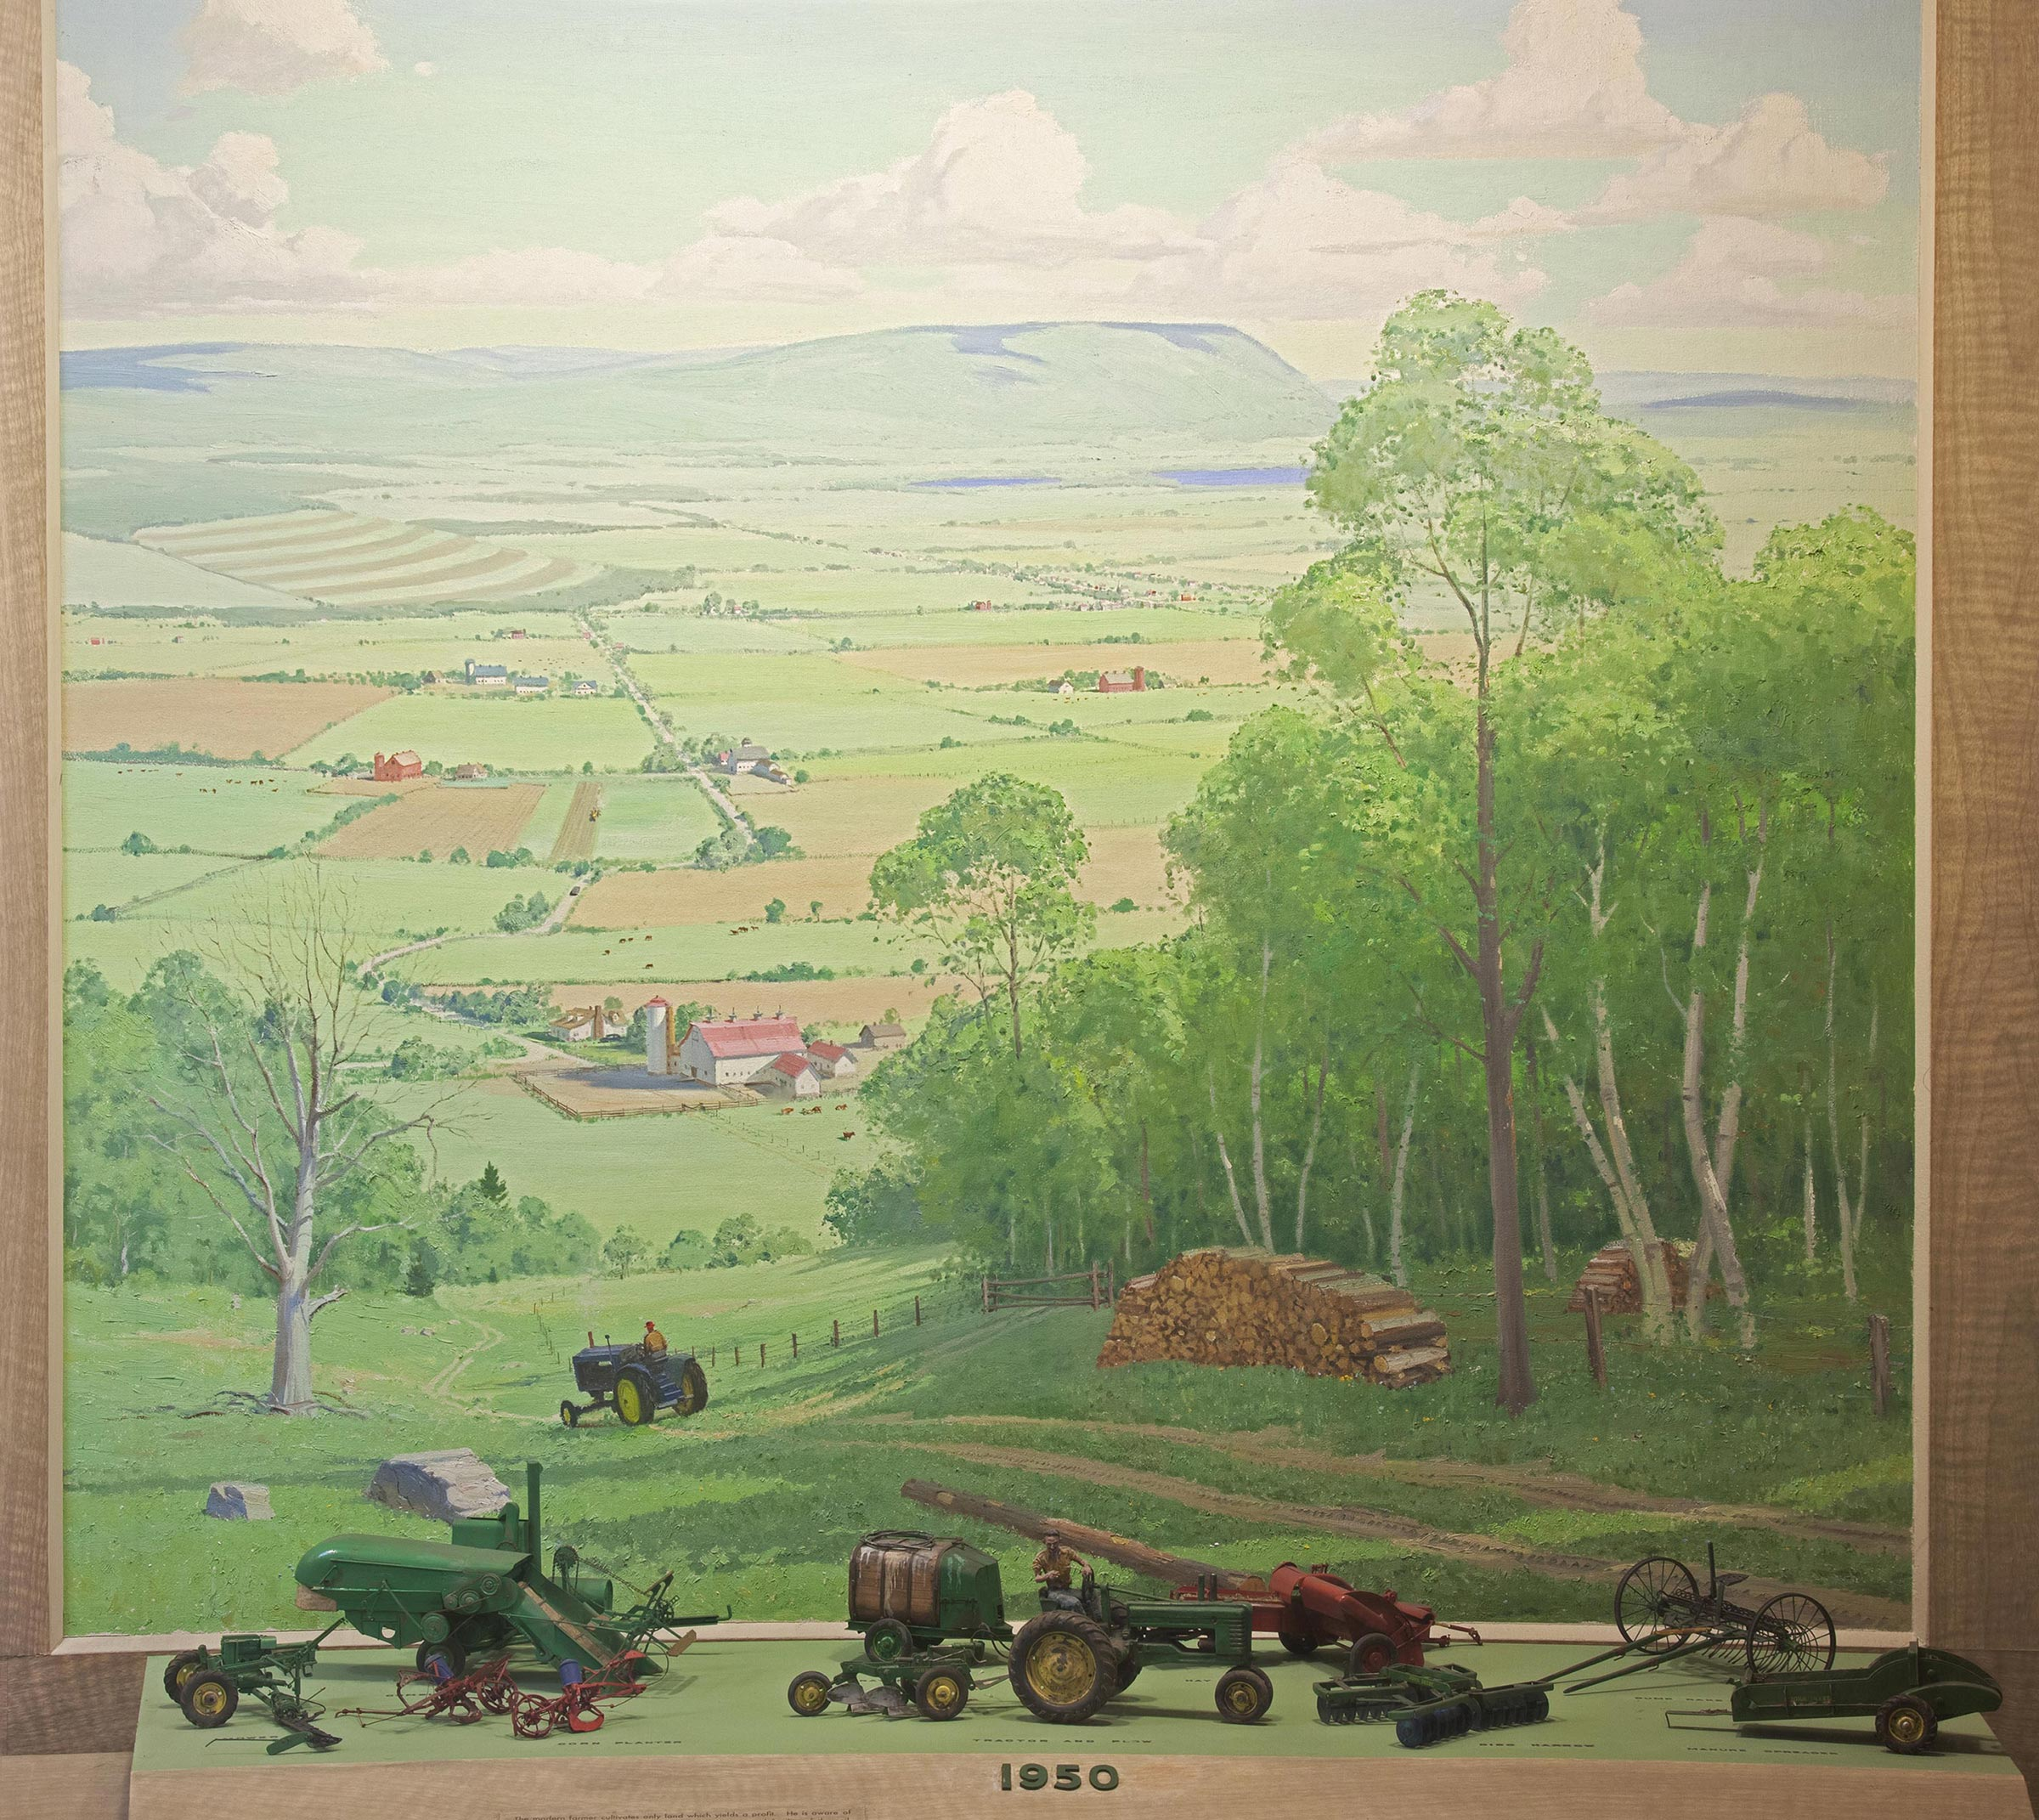 Scale models of farming tools from 1950 with background painting of a landscape with a farm.